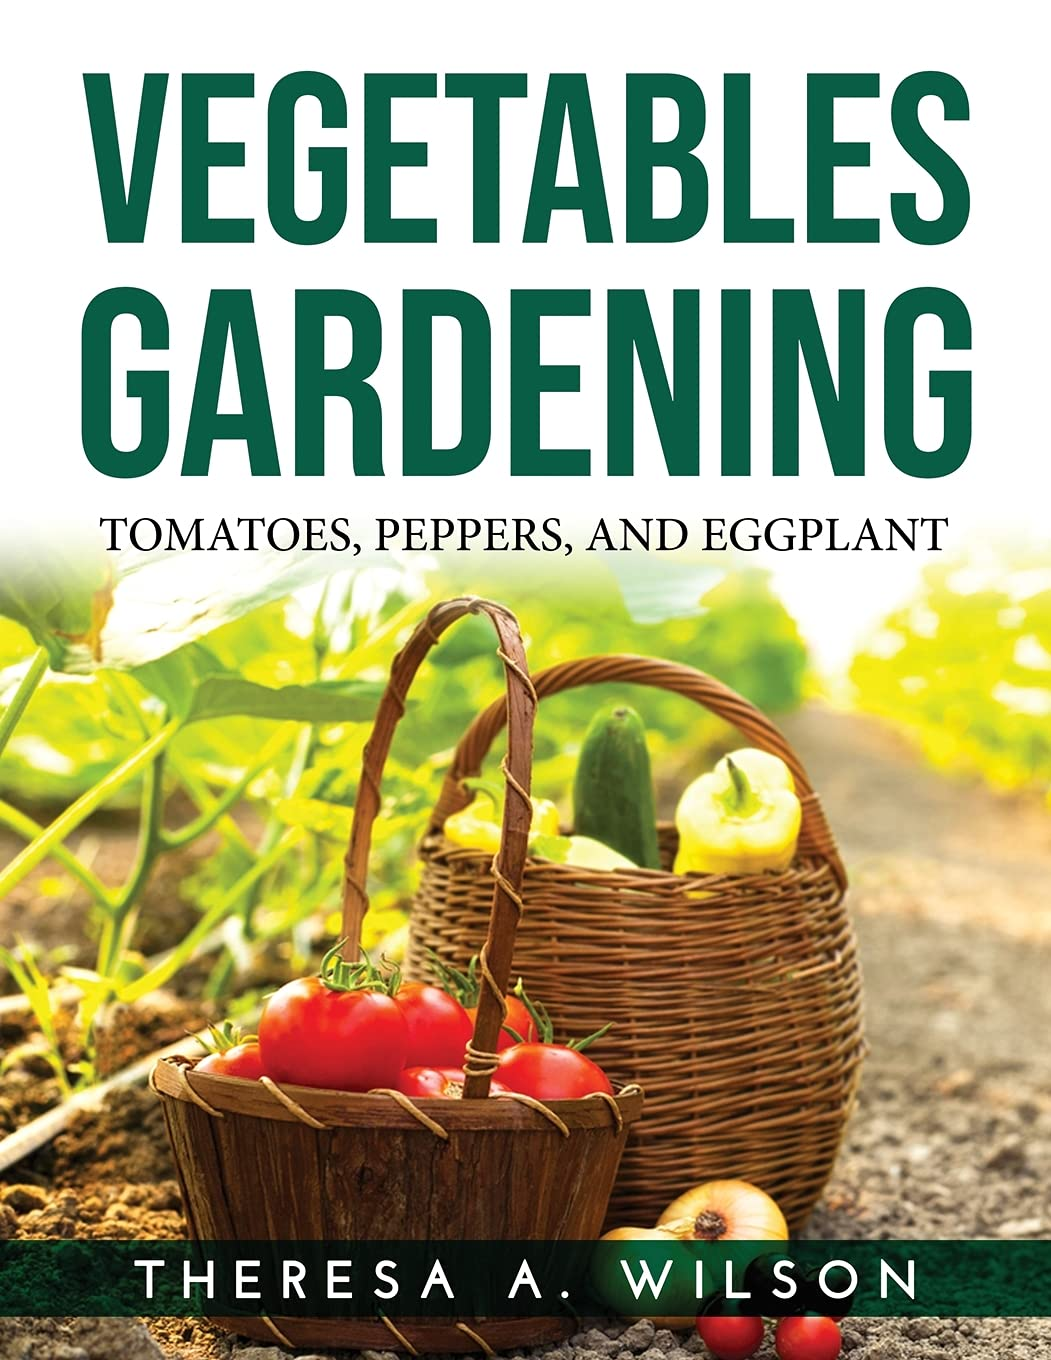 Vegetables Gardening: Tomatoes, Peppers, and Eggplant